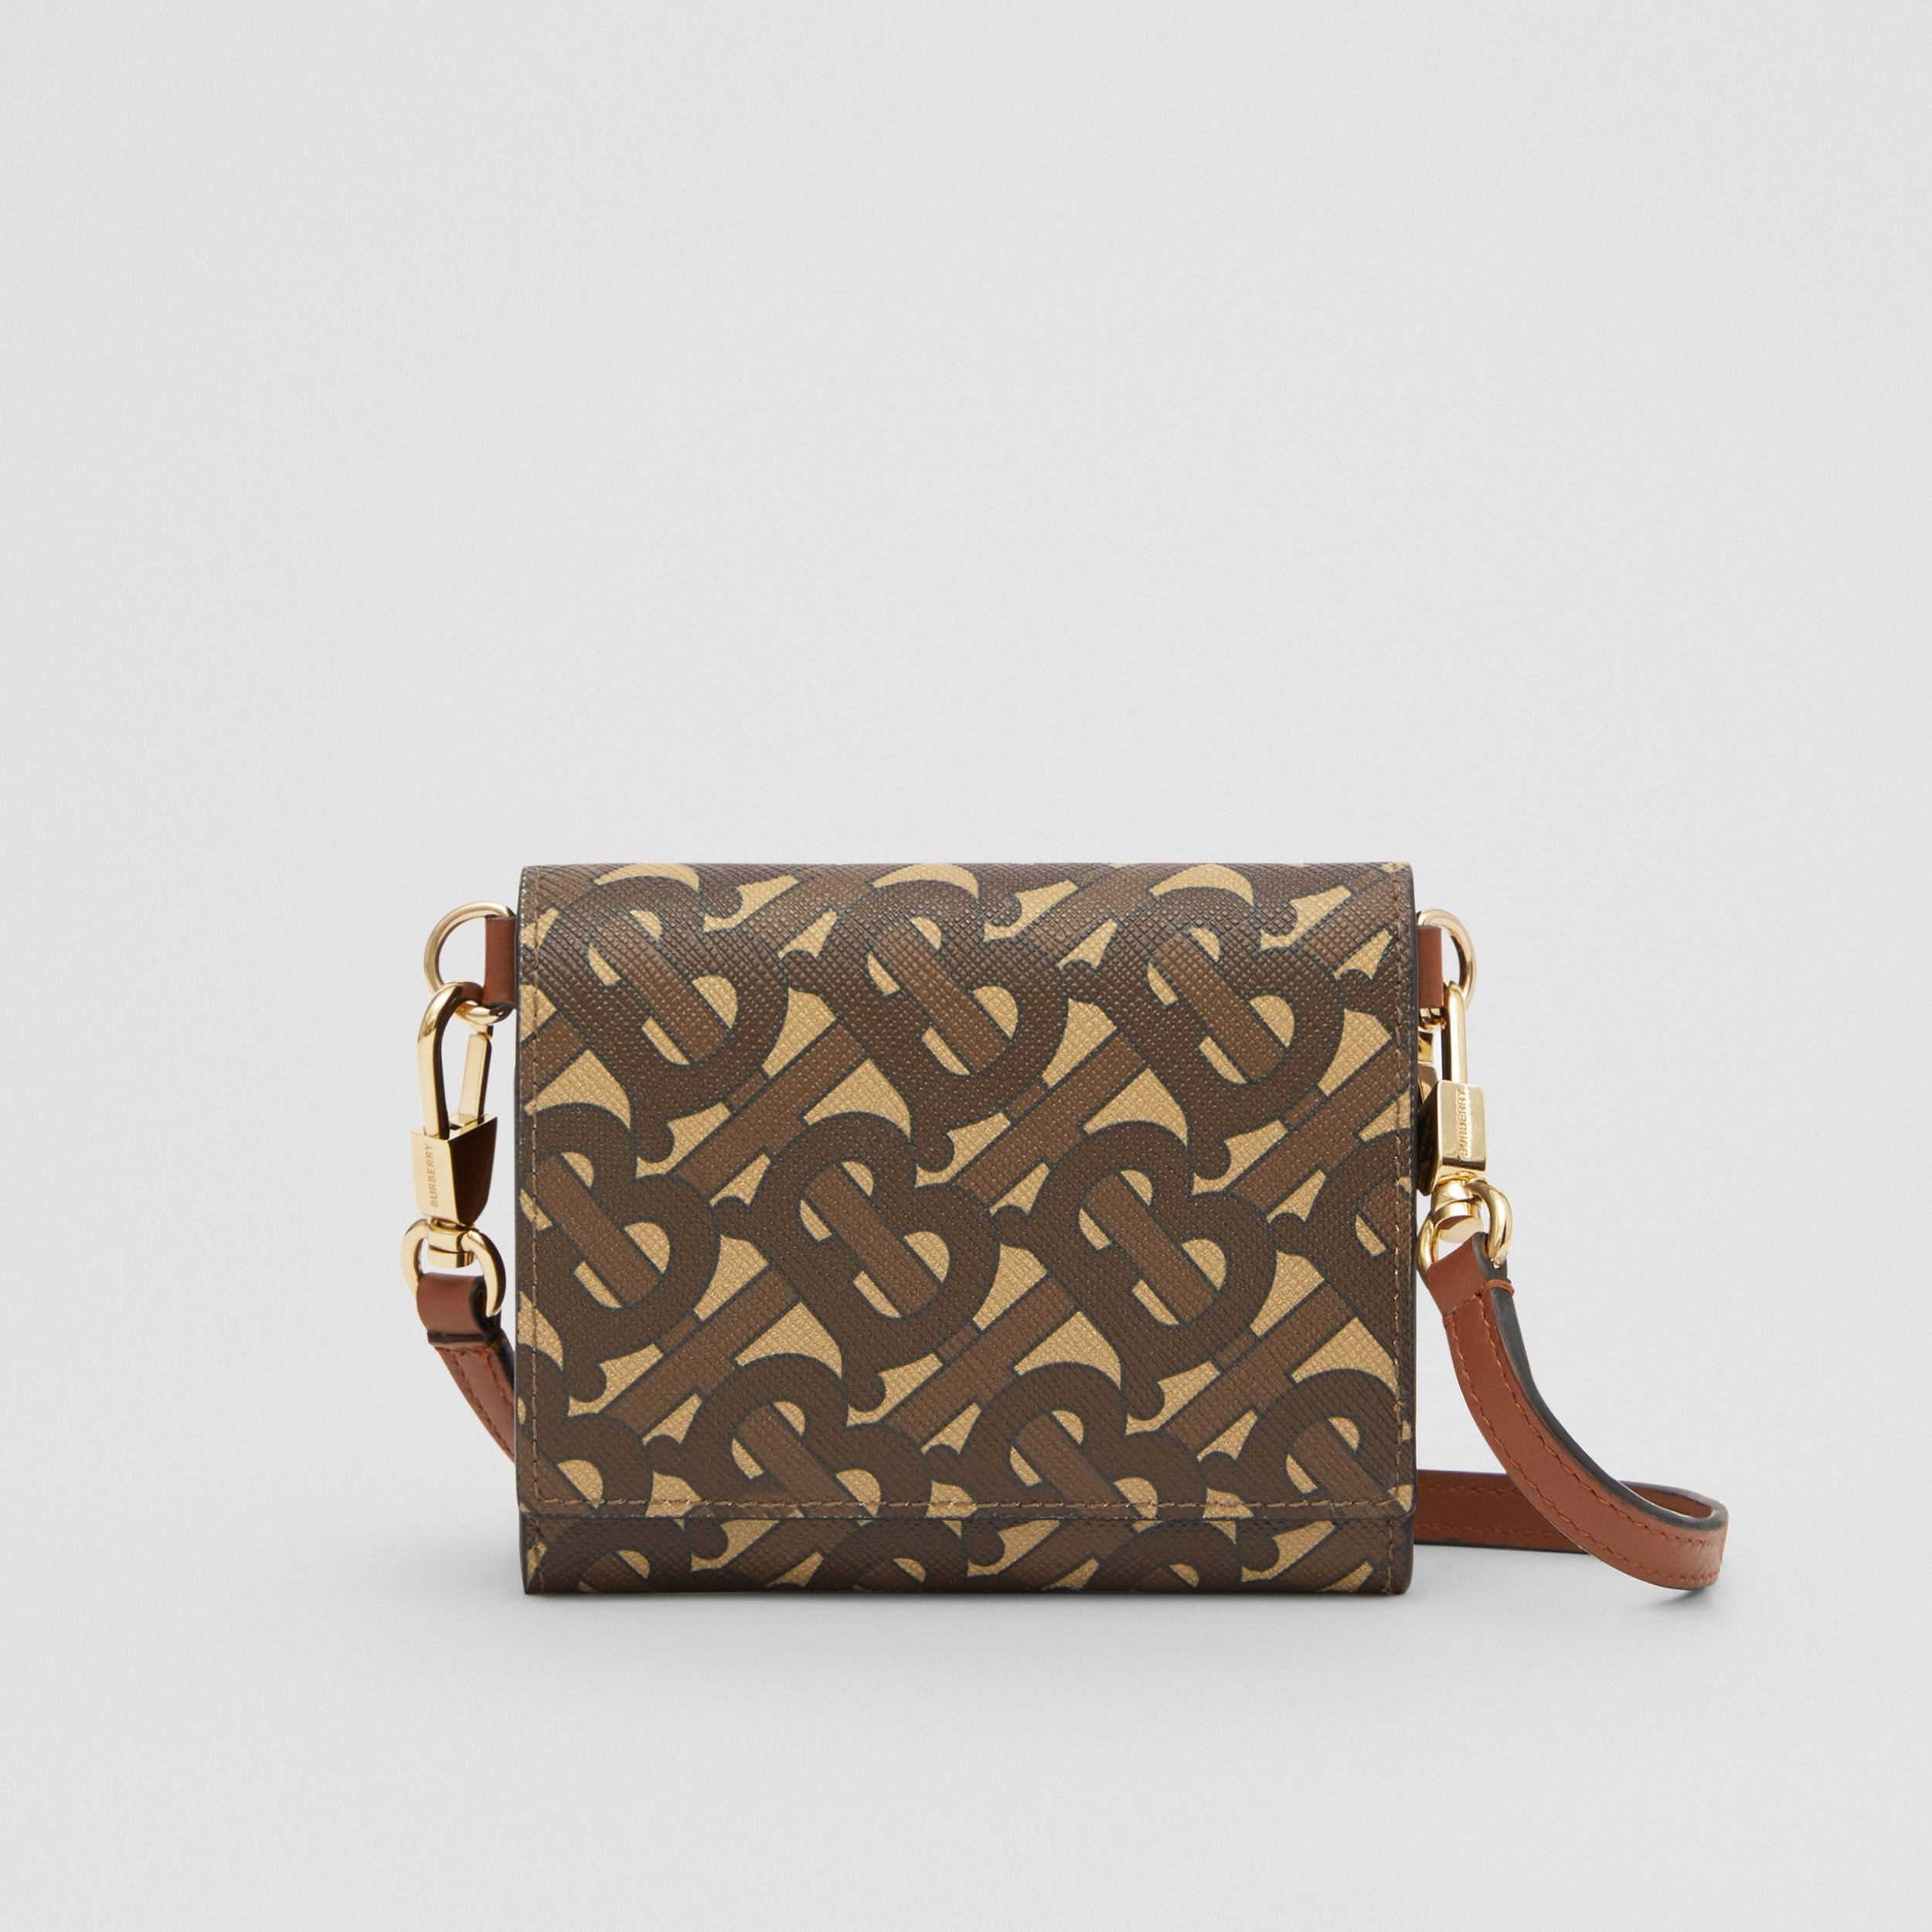 Small Monogram Print Wallet with Detachable Strap in Bridle Brown | Burberry - 1